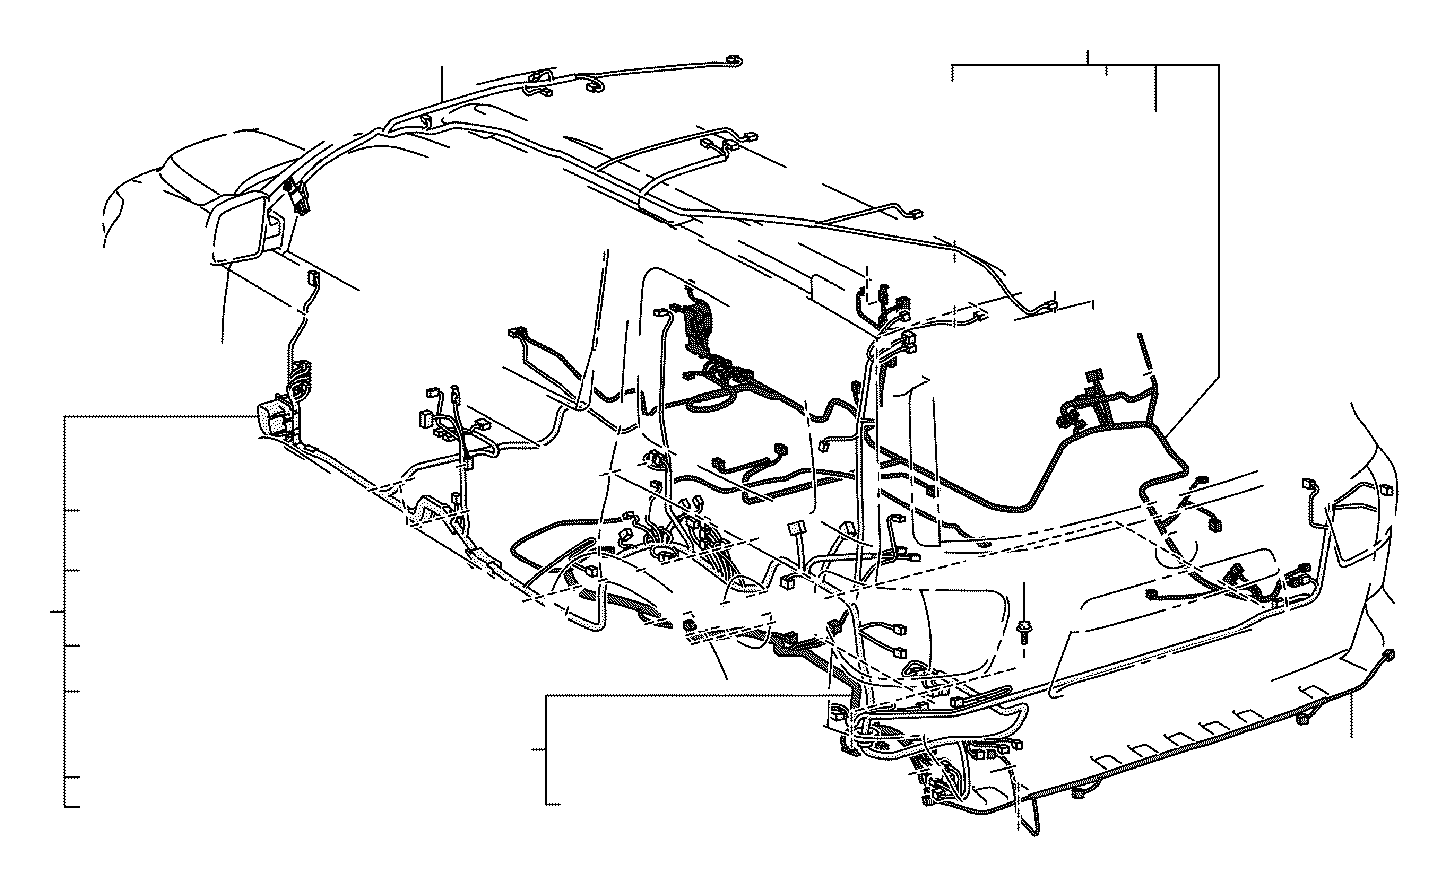 2001 Toyota Celica Connector, wiring harness. Electrical